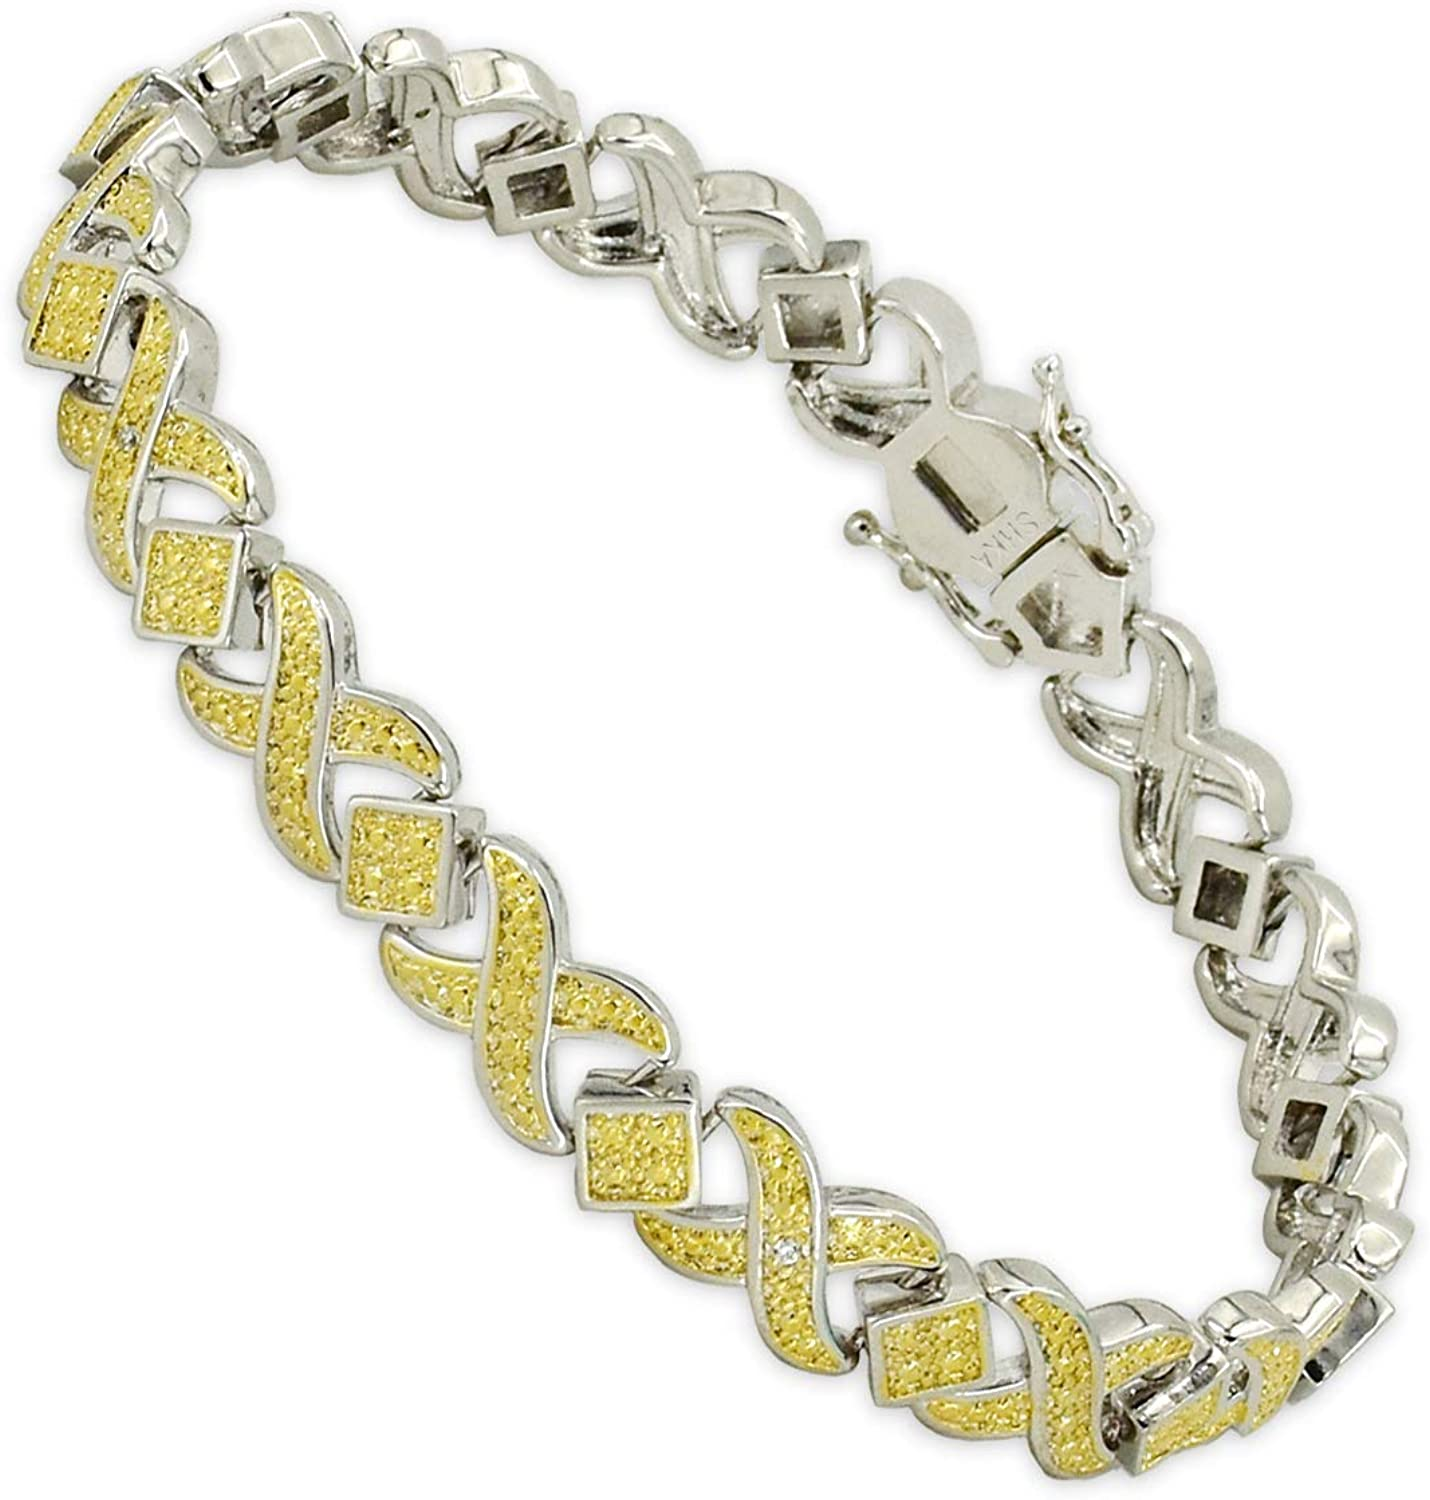 SHKA Sale Special Price 18k Gold Plated XOXO Tennis Max 71% OFF Bracelet Accent with Li Diamond